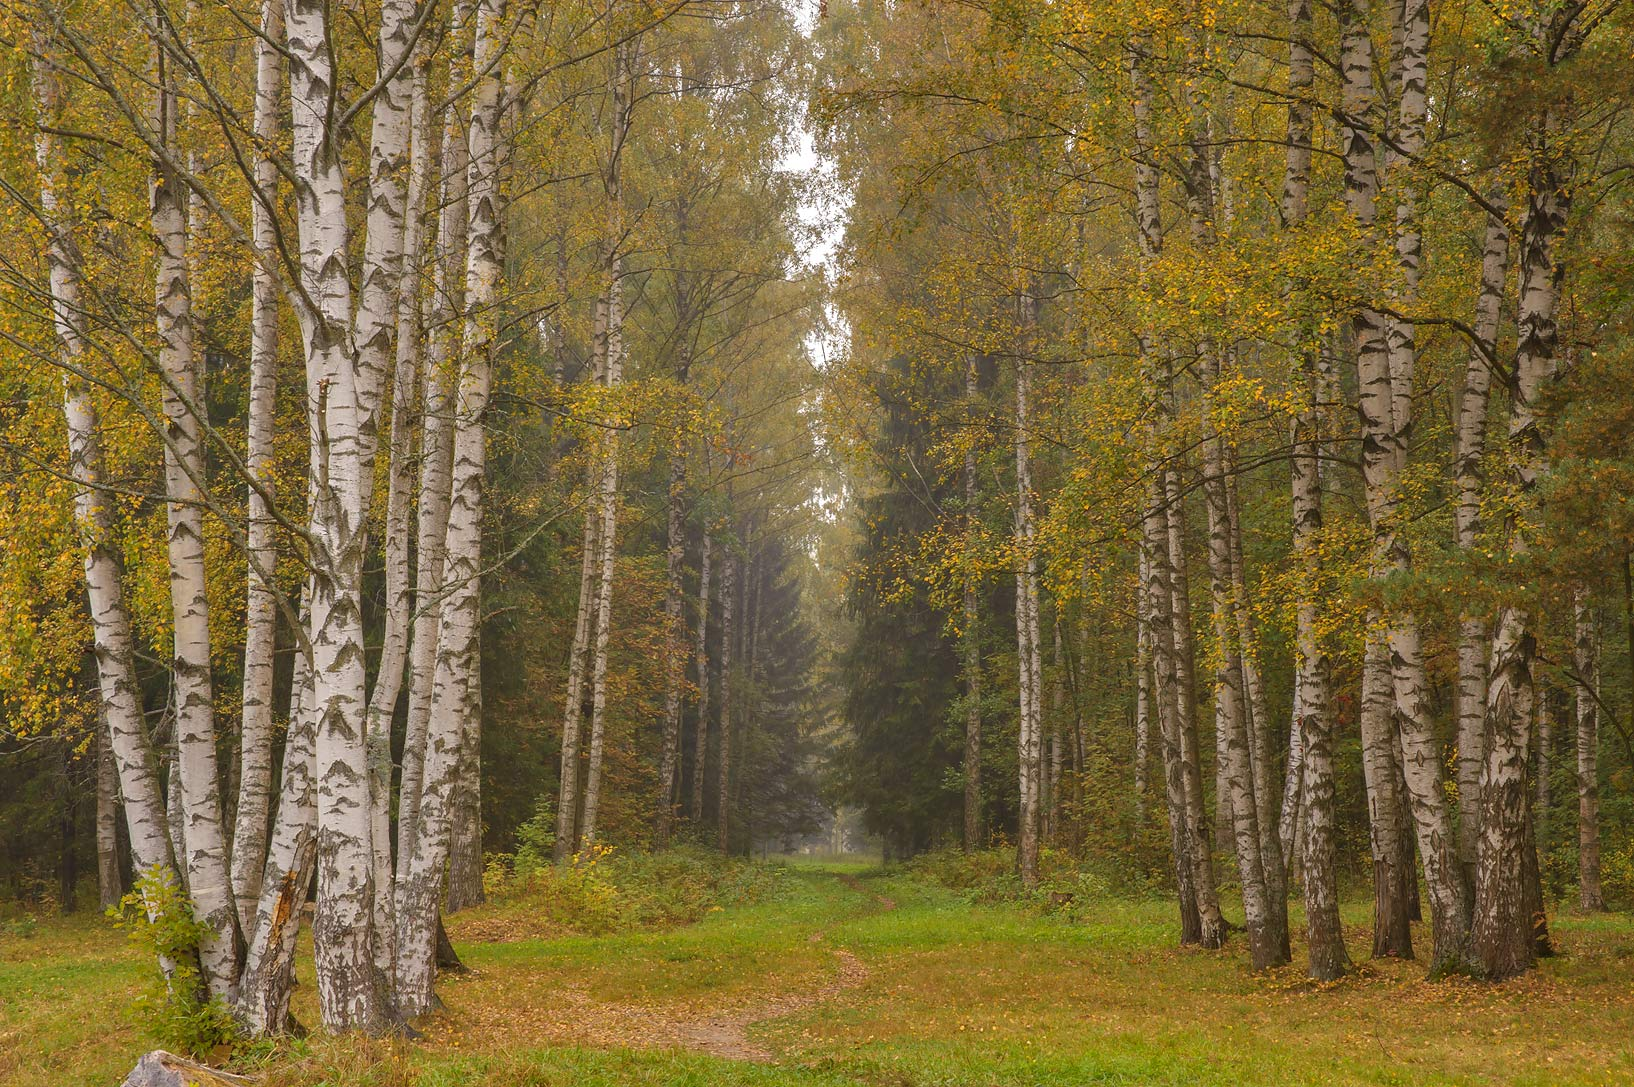 Birches of Poperechnaya Alley in Pavlovsk Park...a suburb of St.Petersburg, Russia